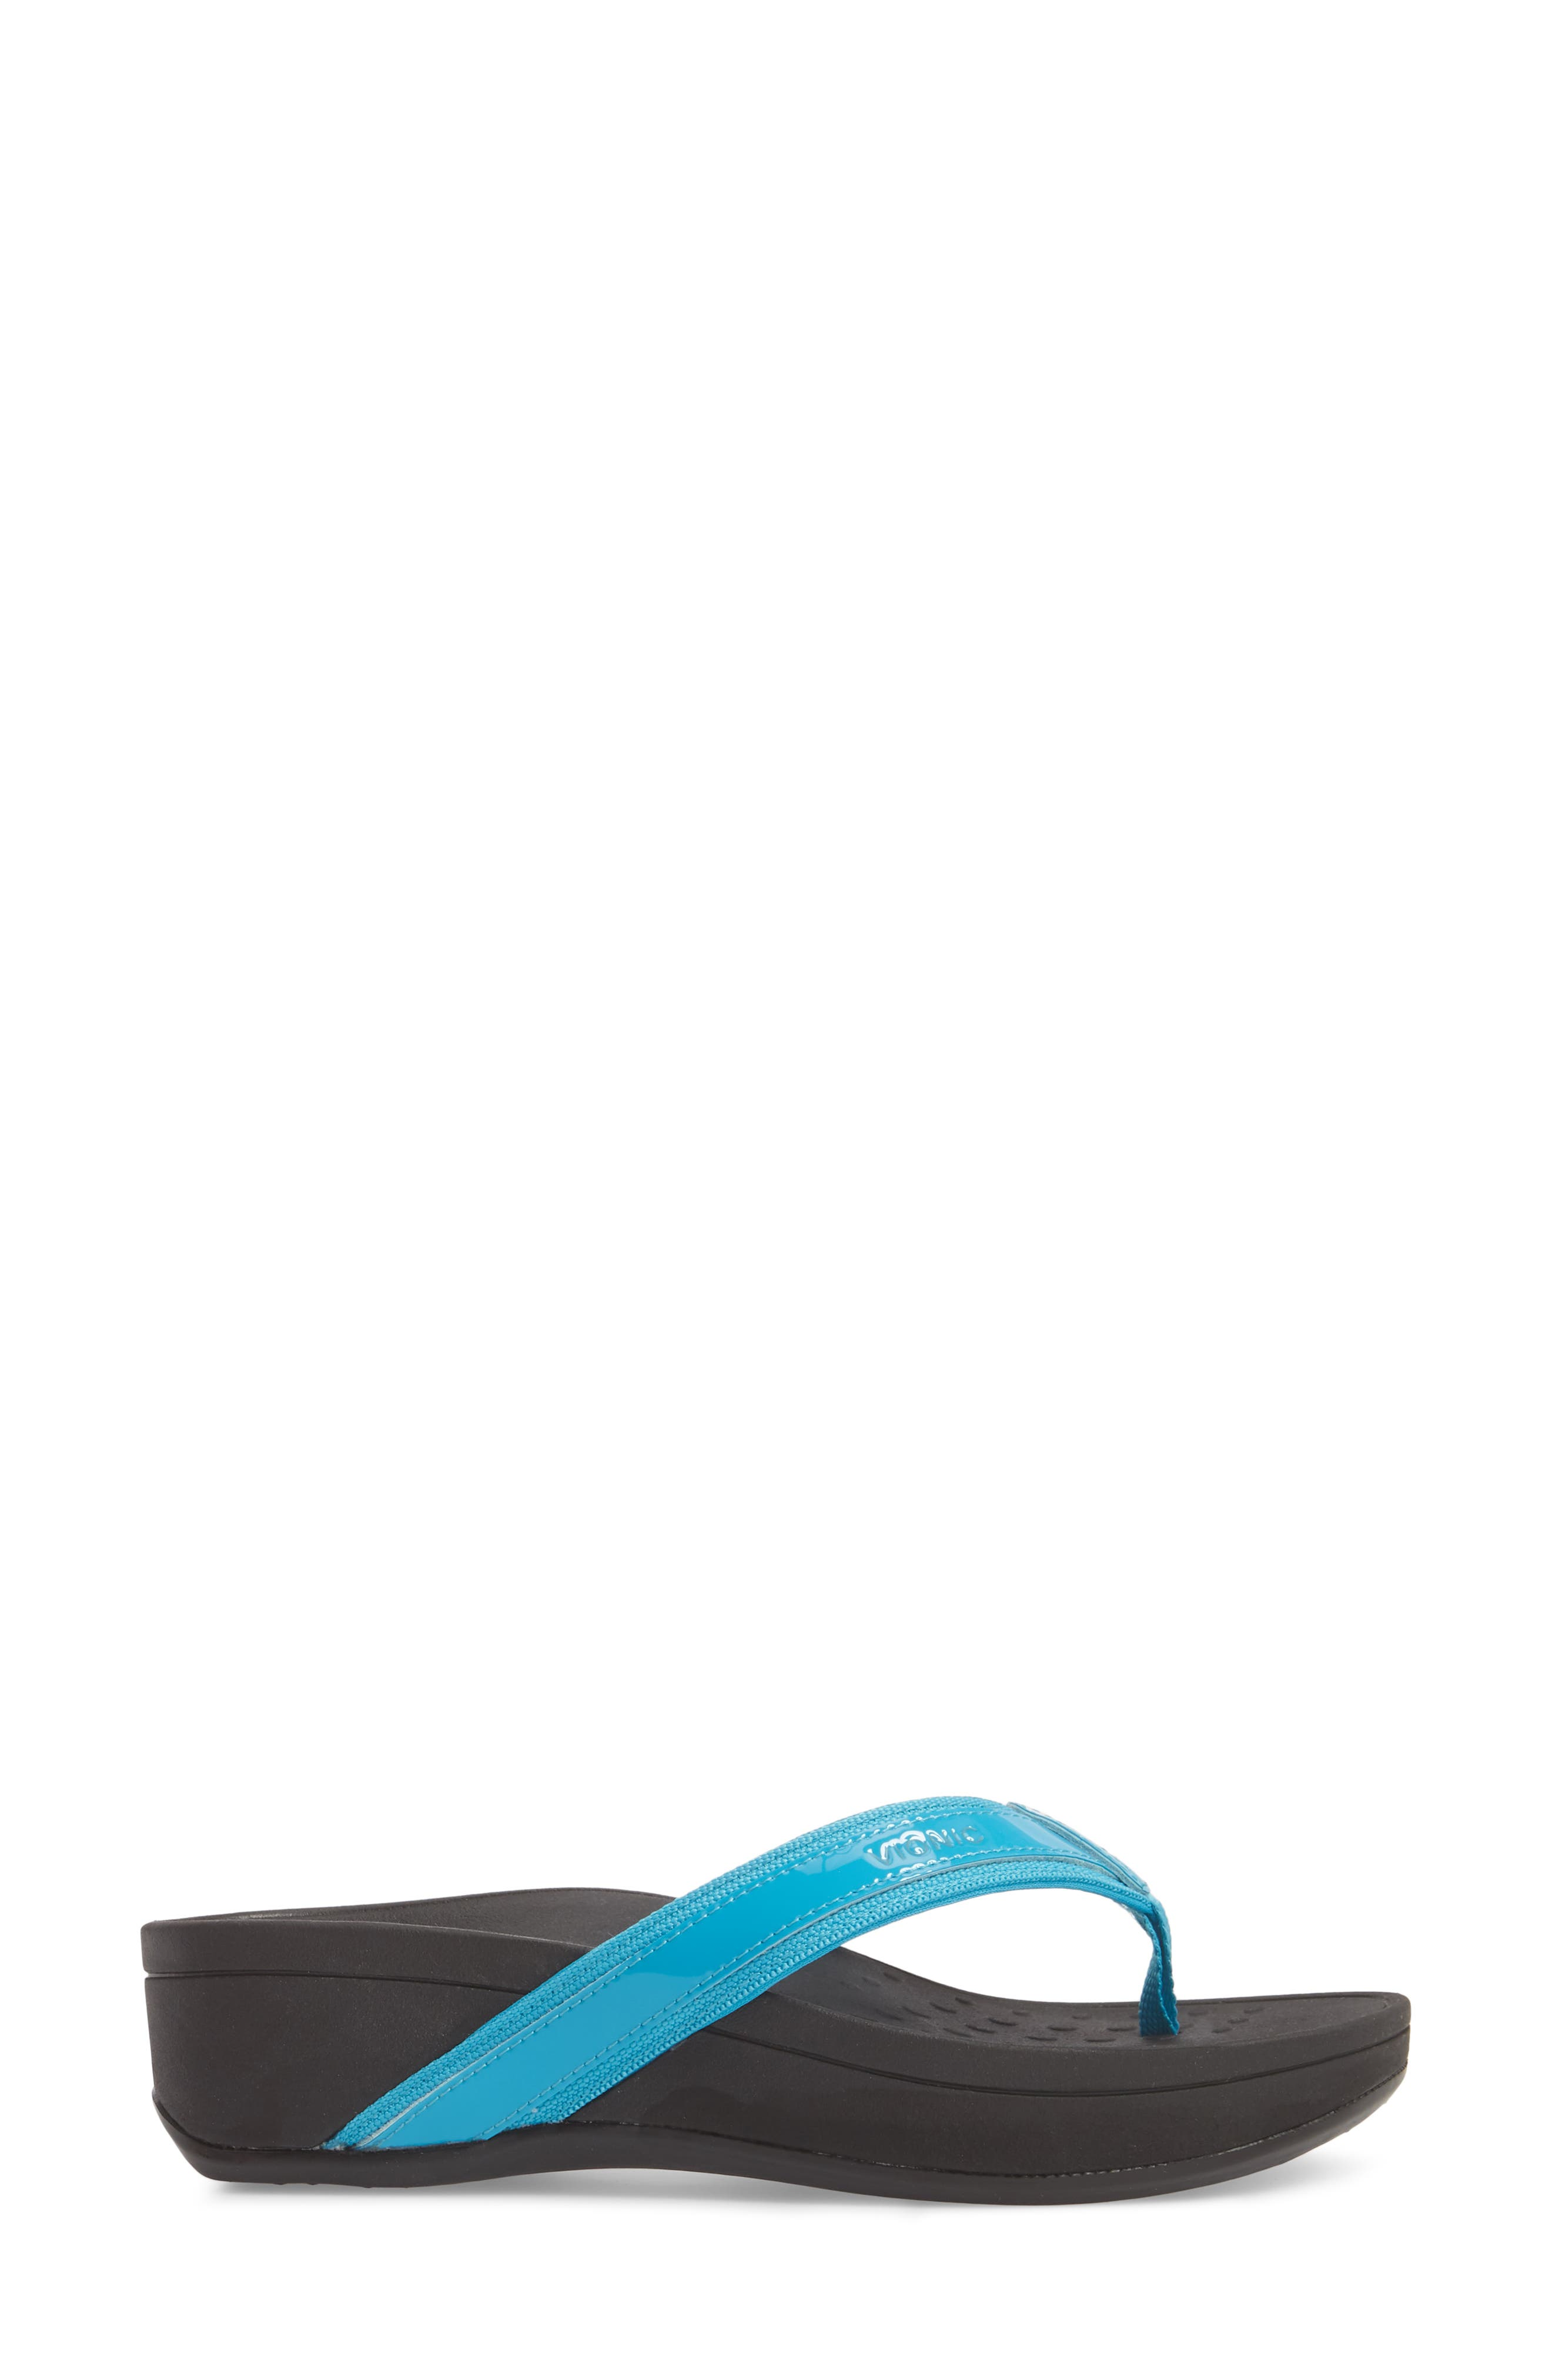 High Tide Wedge Flip Flop,                             Alternate thumbnail 3, color,                             Turquoise Leather